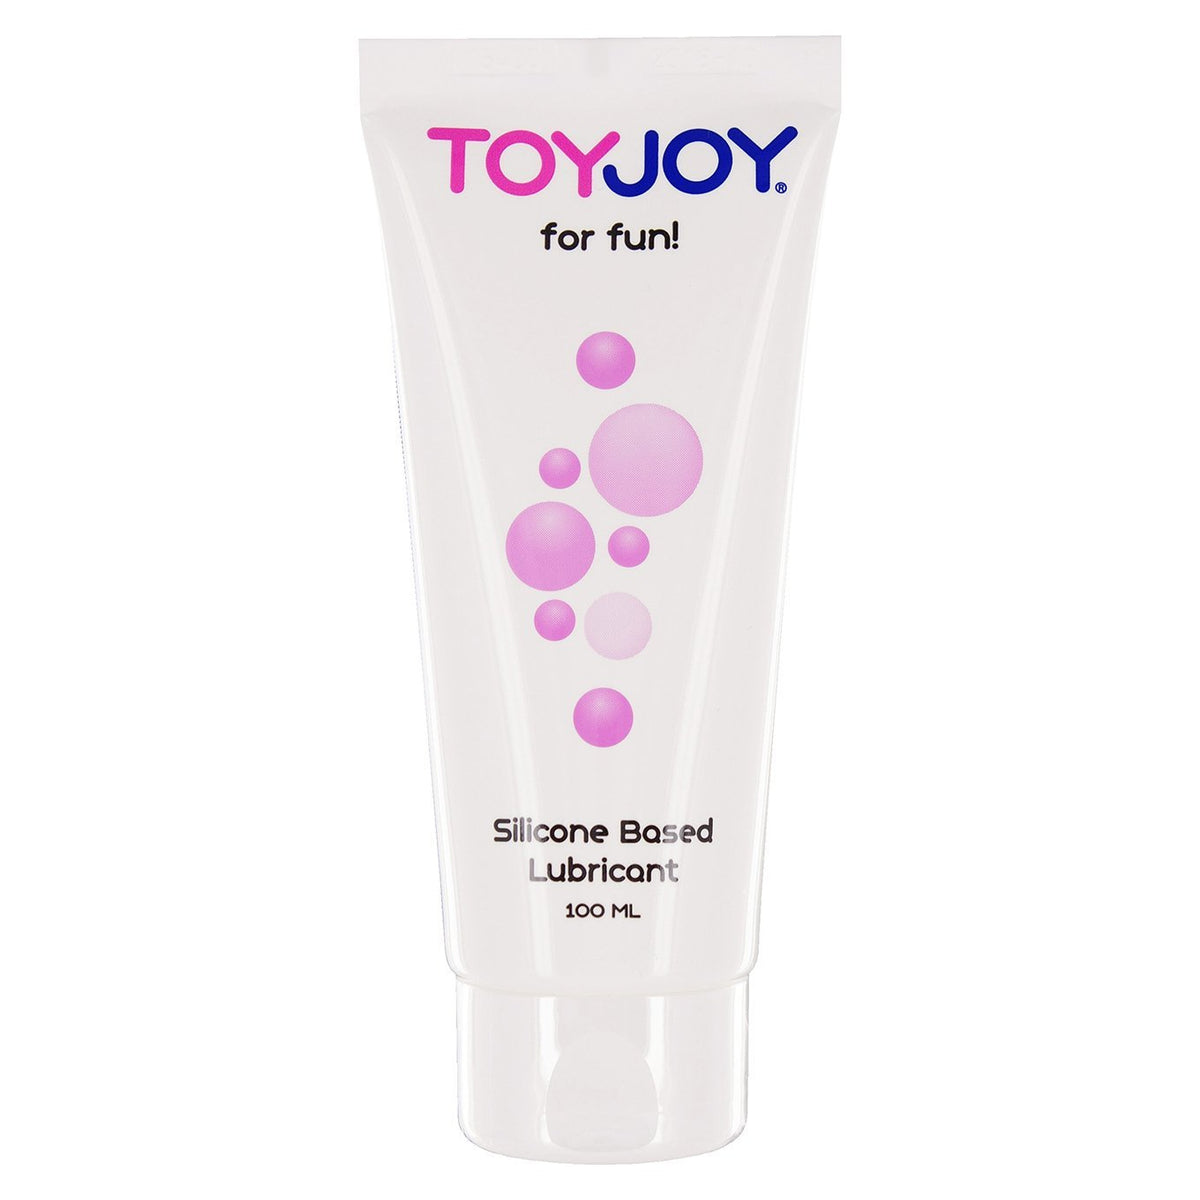 ToyJoy - Silicone Based Lubricant 100 ml Lube (Silicone Based) Singapore